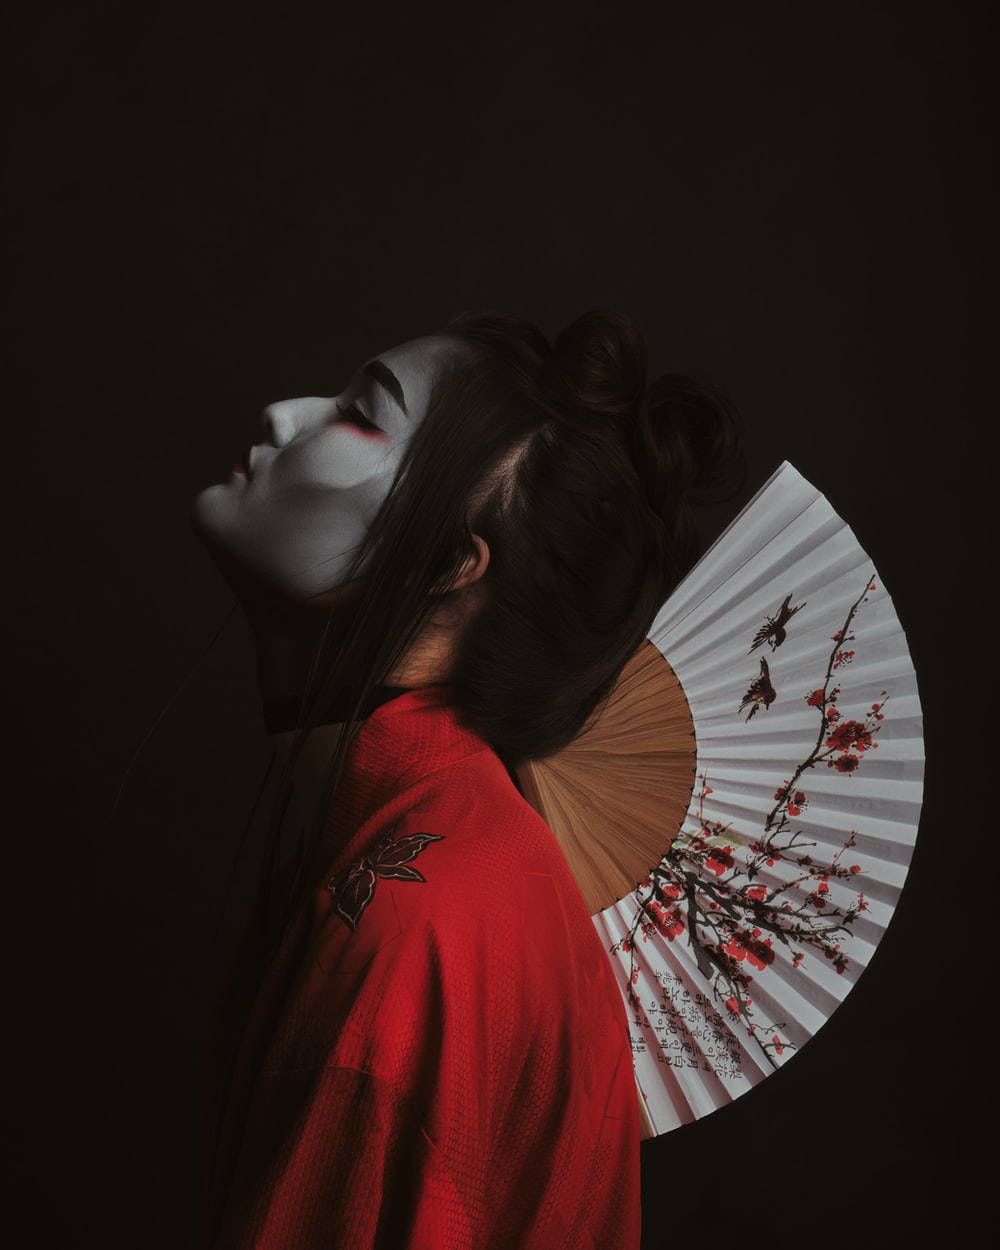 woman in red shirt covering her face with white and black floral hand fan